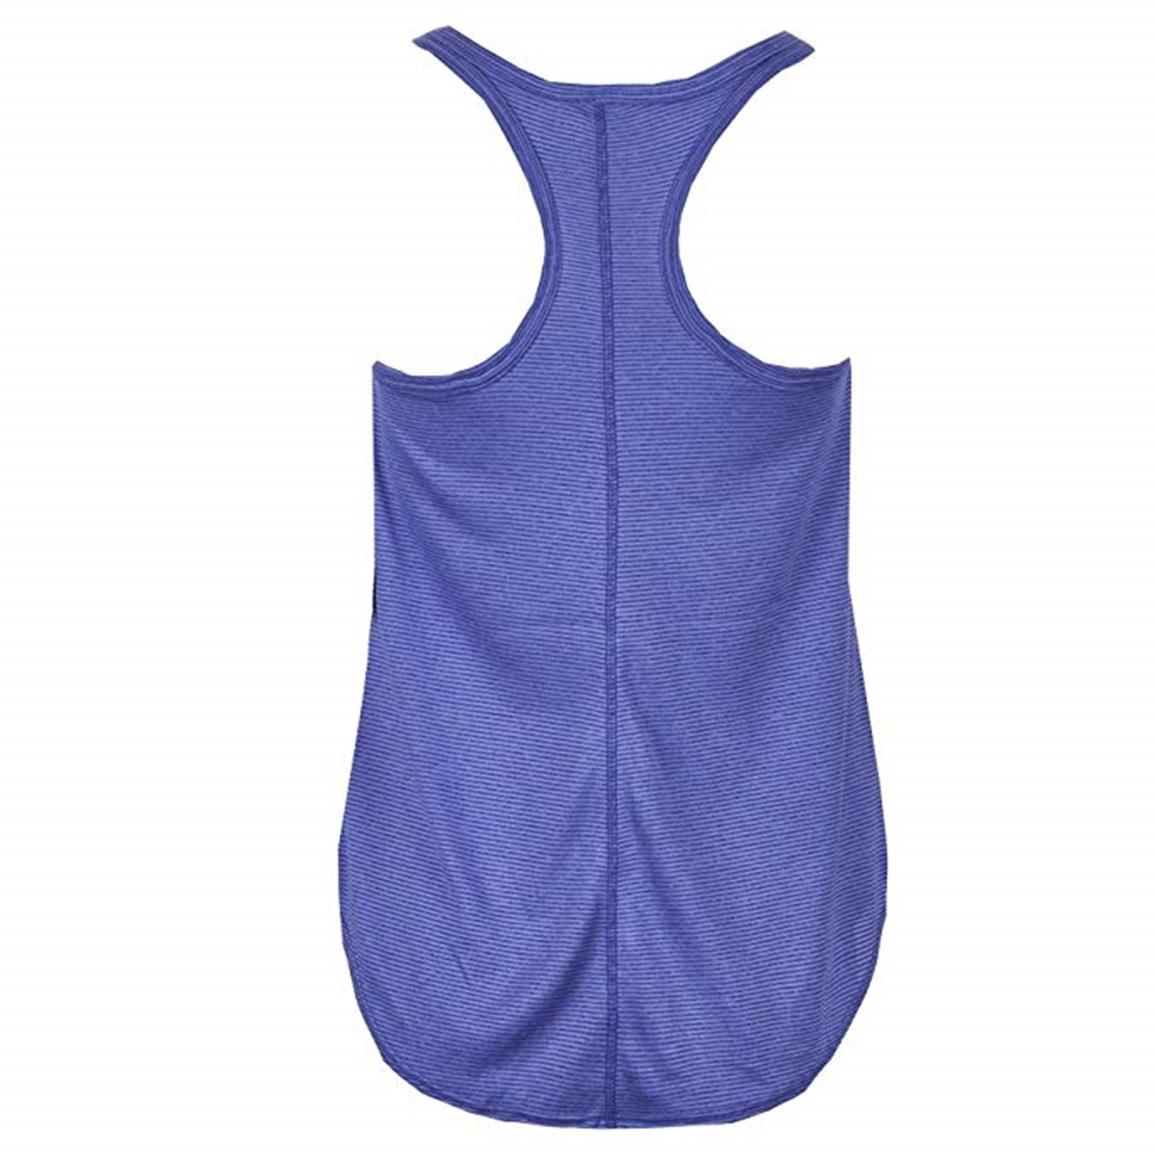 Ladies-Womens-Red-Tag-Active-Racer-Back-Yoga-Gym-Exercise-Vest-Tank-Top thumbnail 17